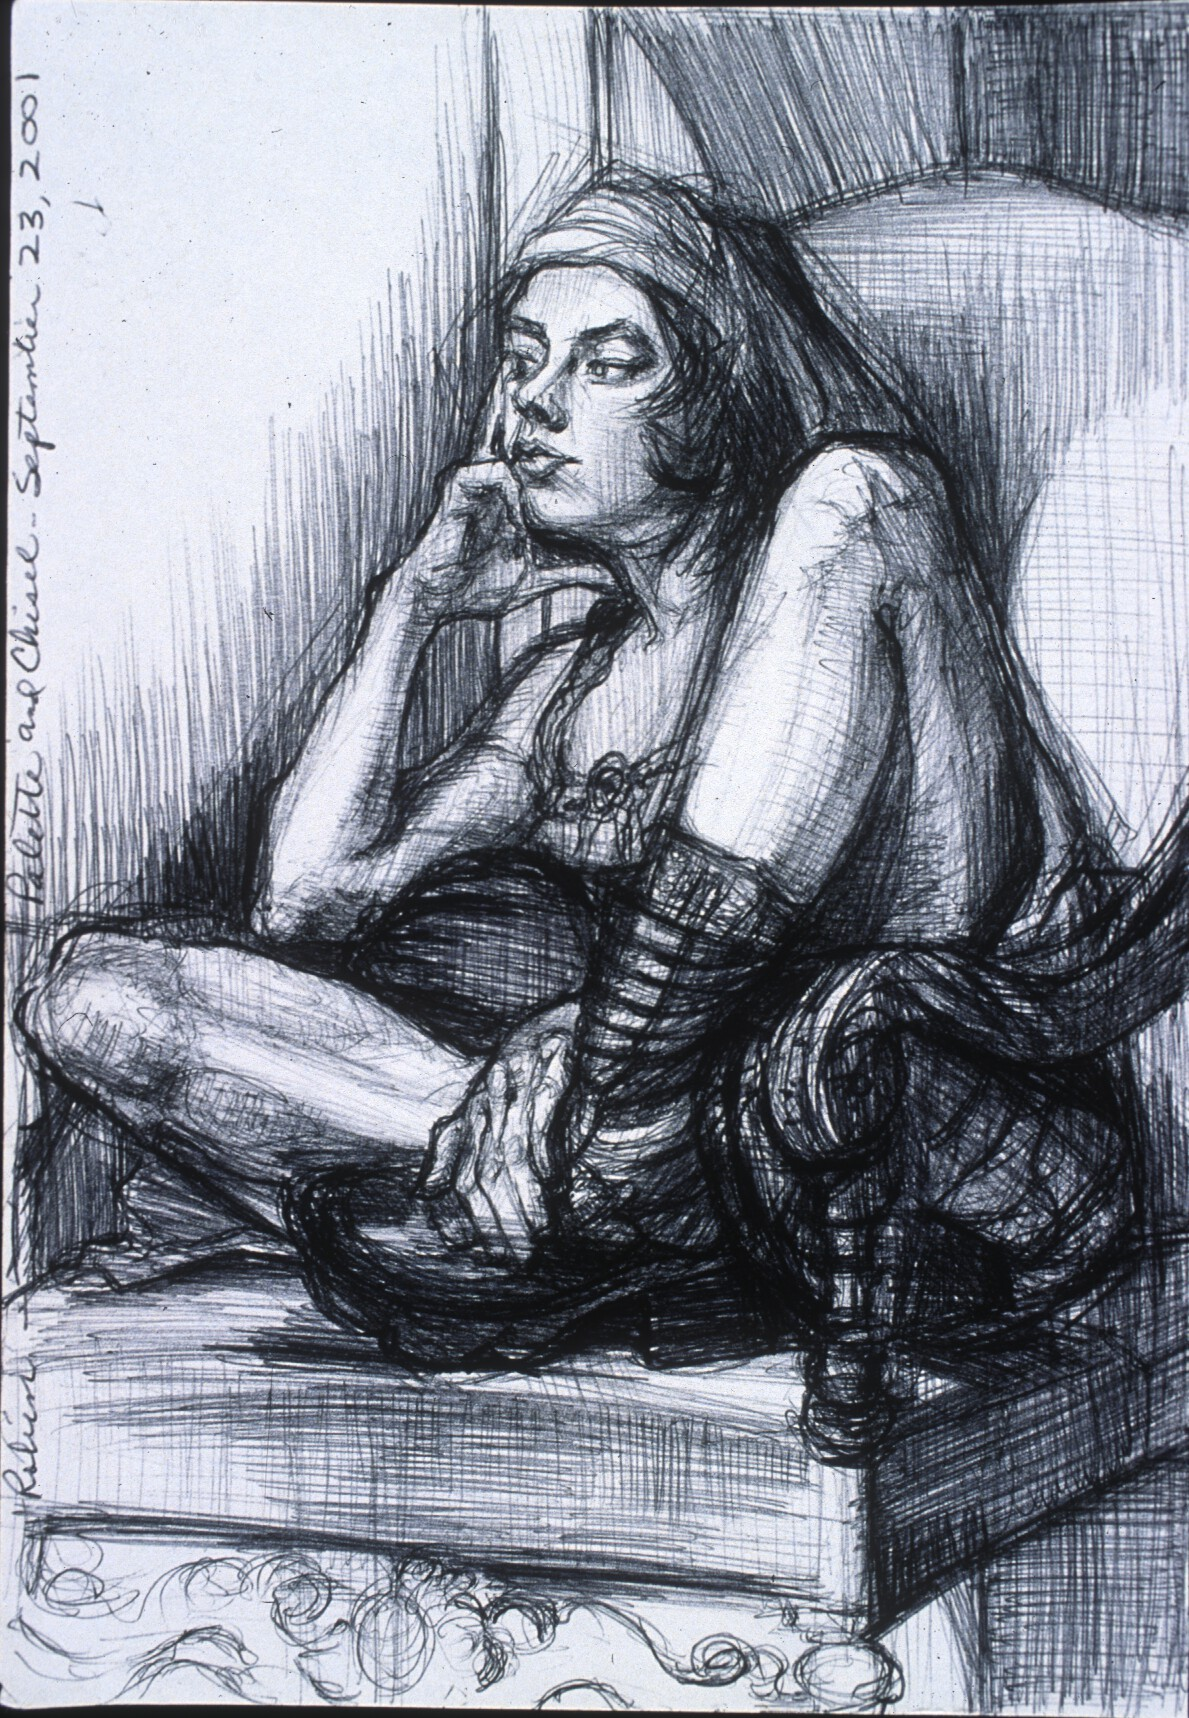 """Lou Ann Burkhardt  Robin  , 2001 Pen and ink on paper 12"""" x 16-1/2"""", framed $400 (sold) Giclee prints available, priced by size"""